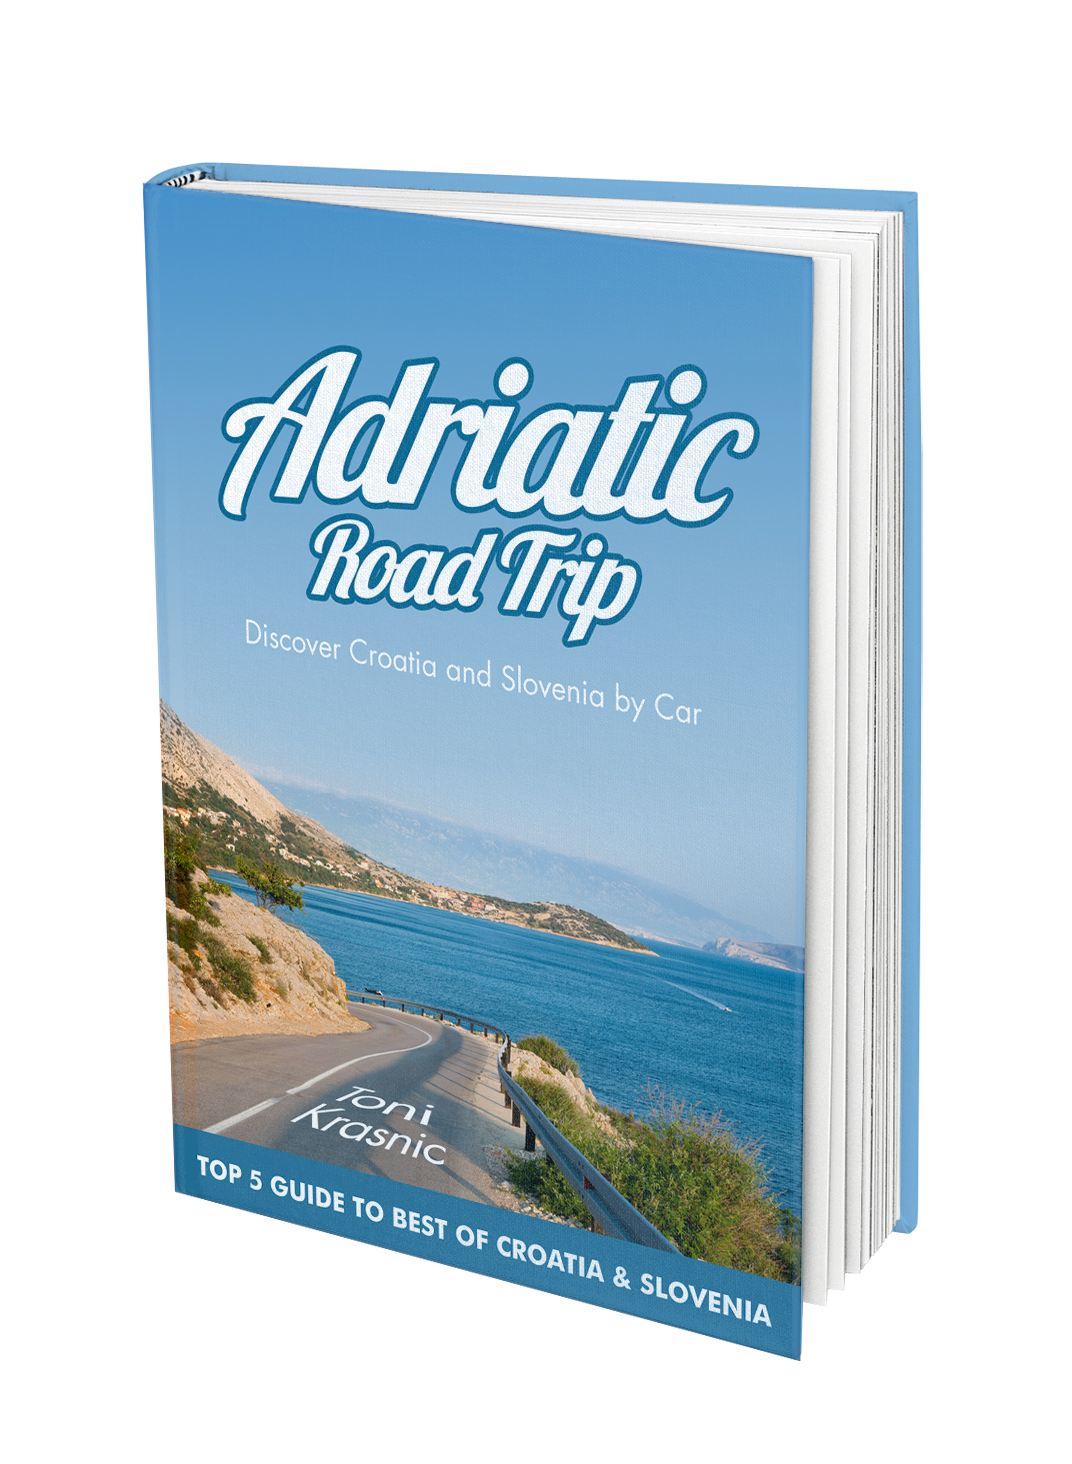 Adriatic Road Trip on Amazon ($4.99)